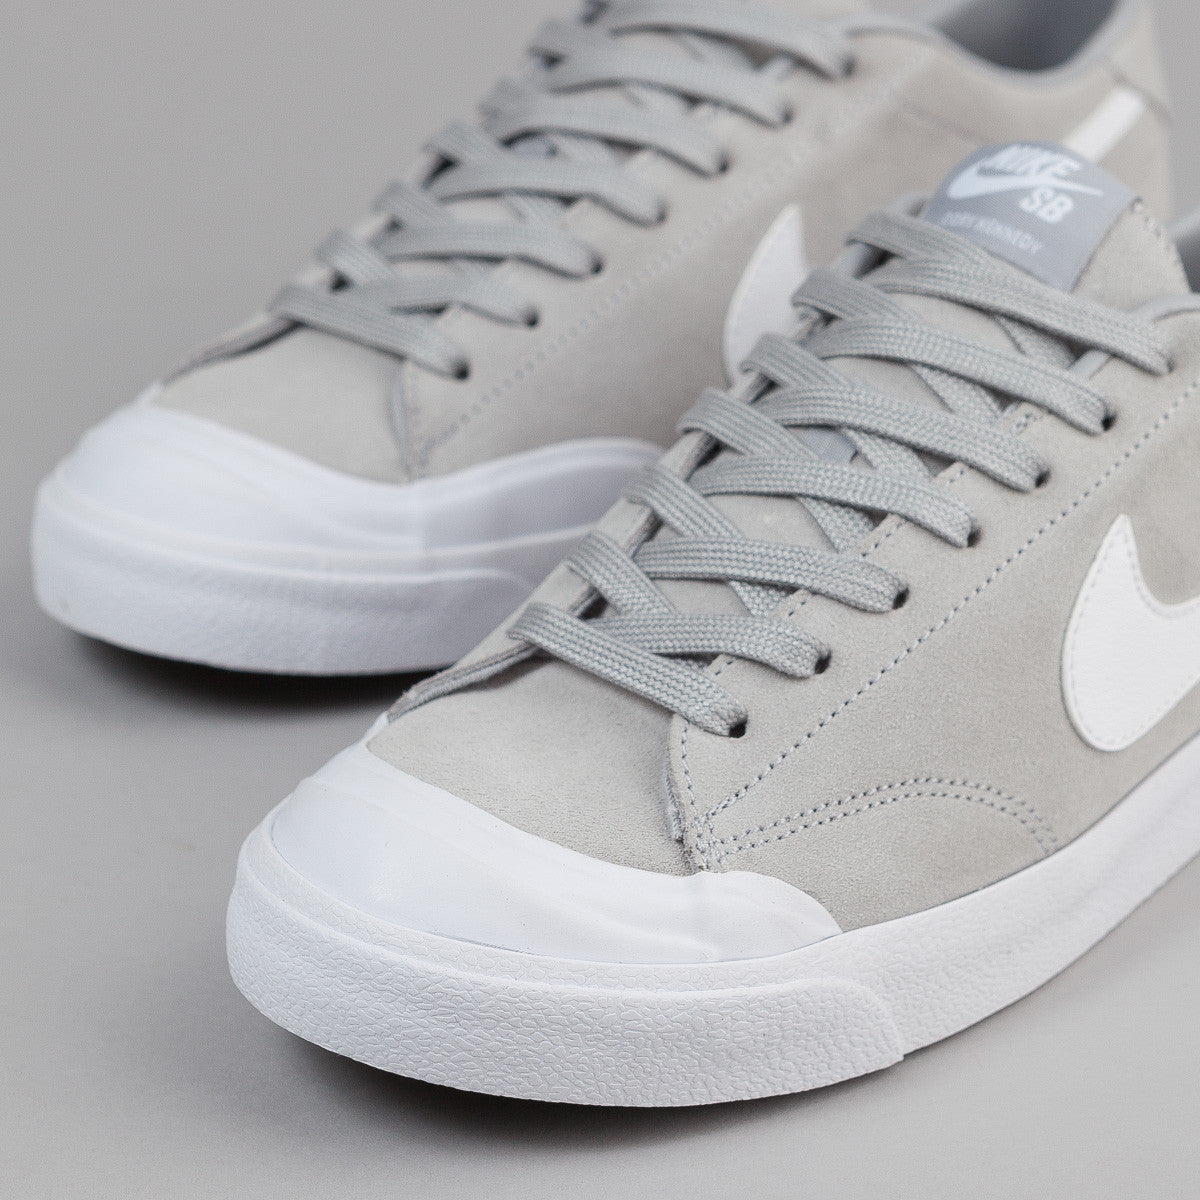 Nike SB All Court CK Shoes - Wolf Grey / White